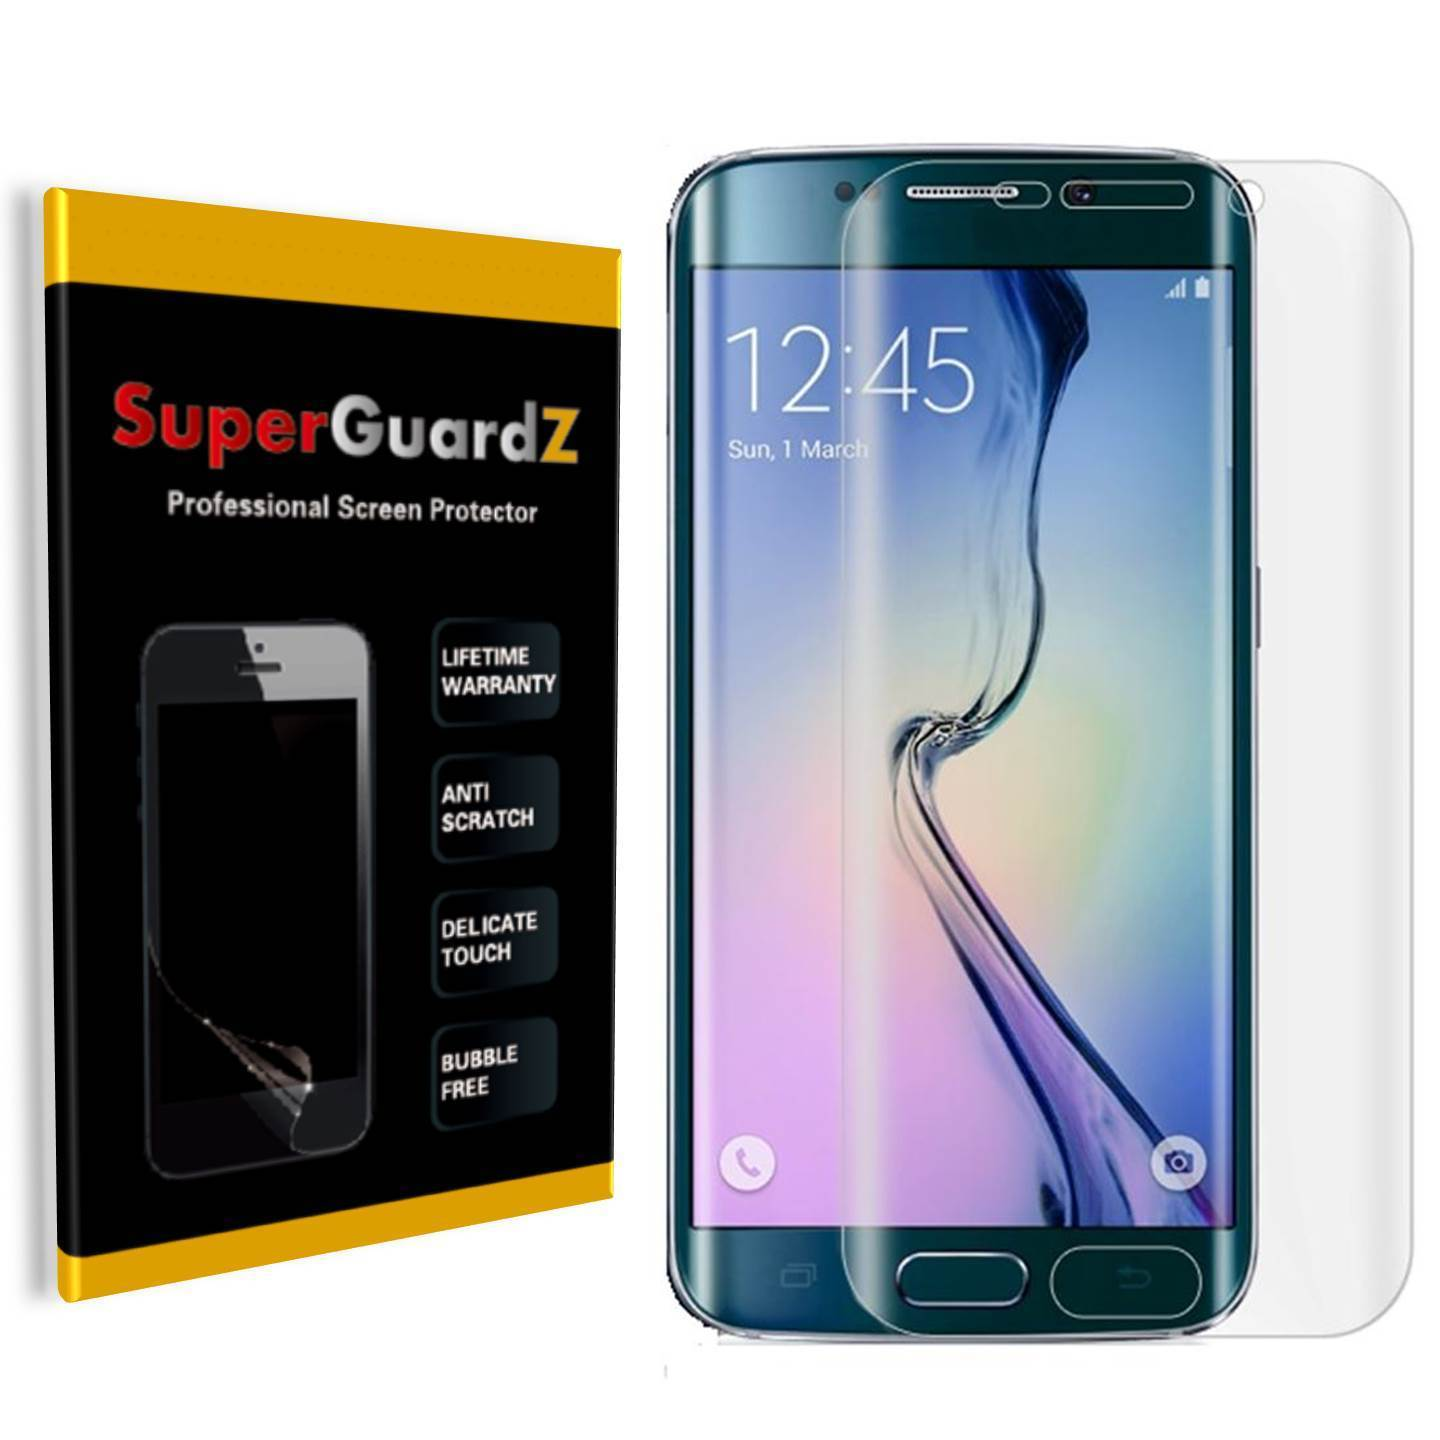 [2-Pack] For Samsung Galaxy S6 Edge+ Plus - SuperGuardZ 3D Curved FULL COVER Screen Protector [HD Clear, Anti-Scratch] + LED Stylus